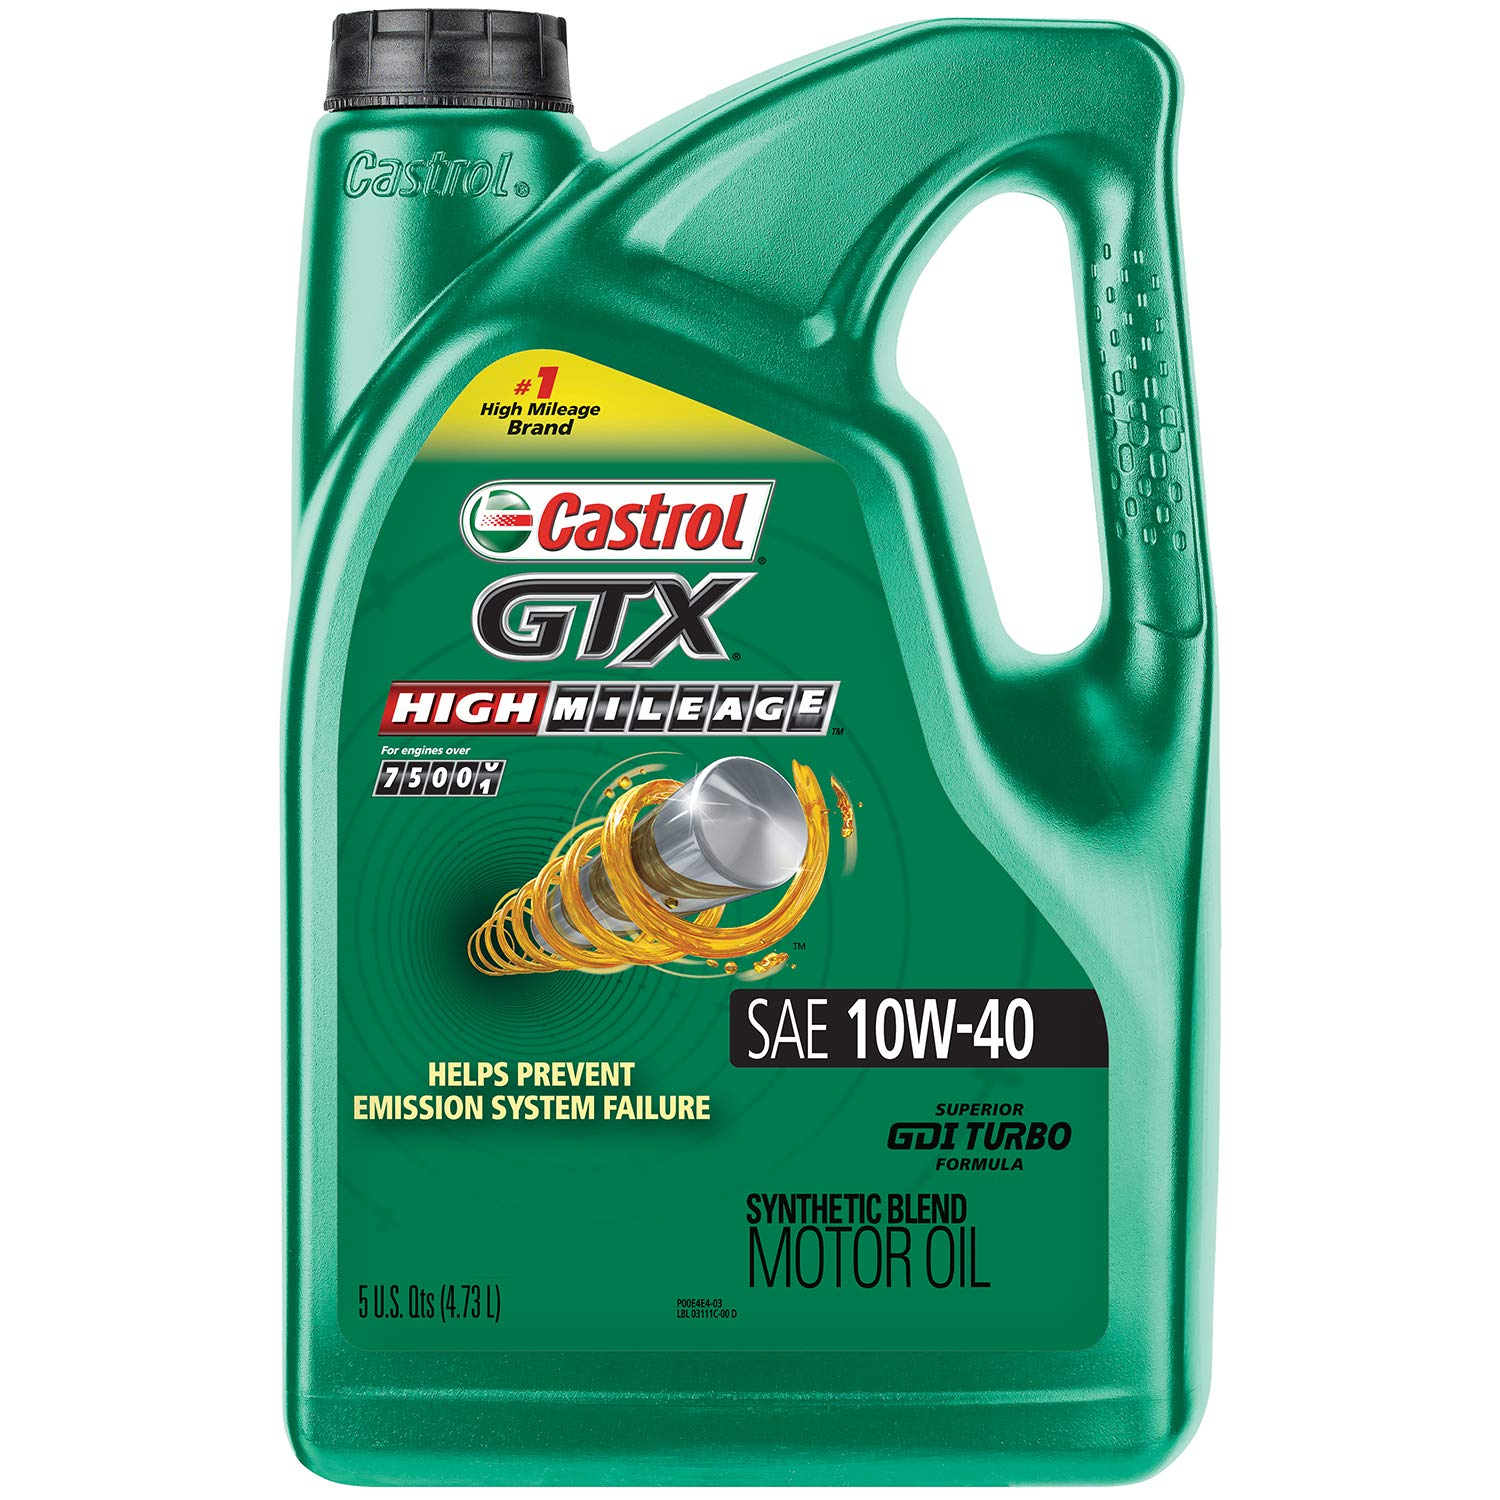 Castrol's GTX High-Mileage Oil}